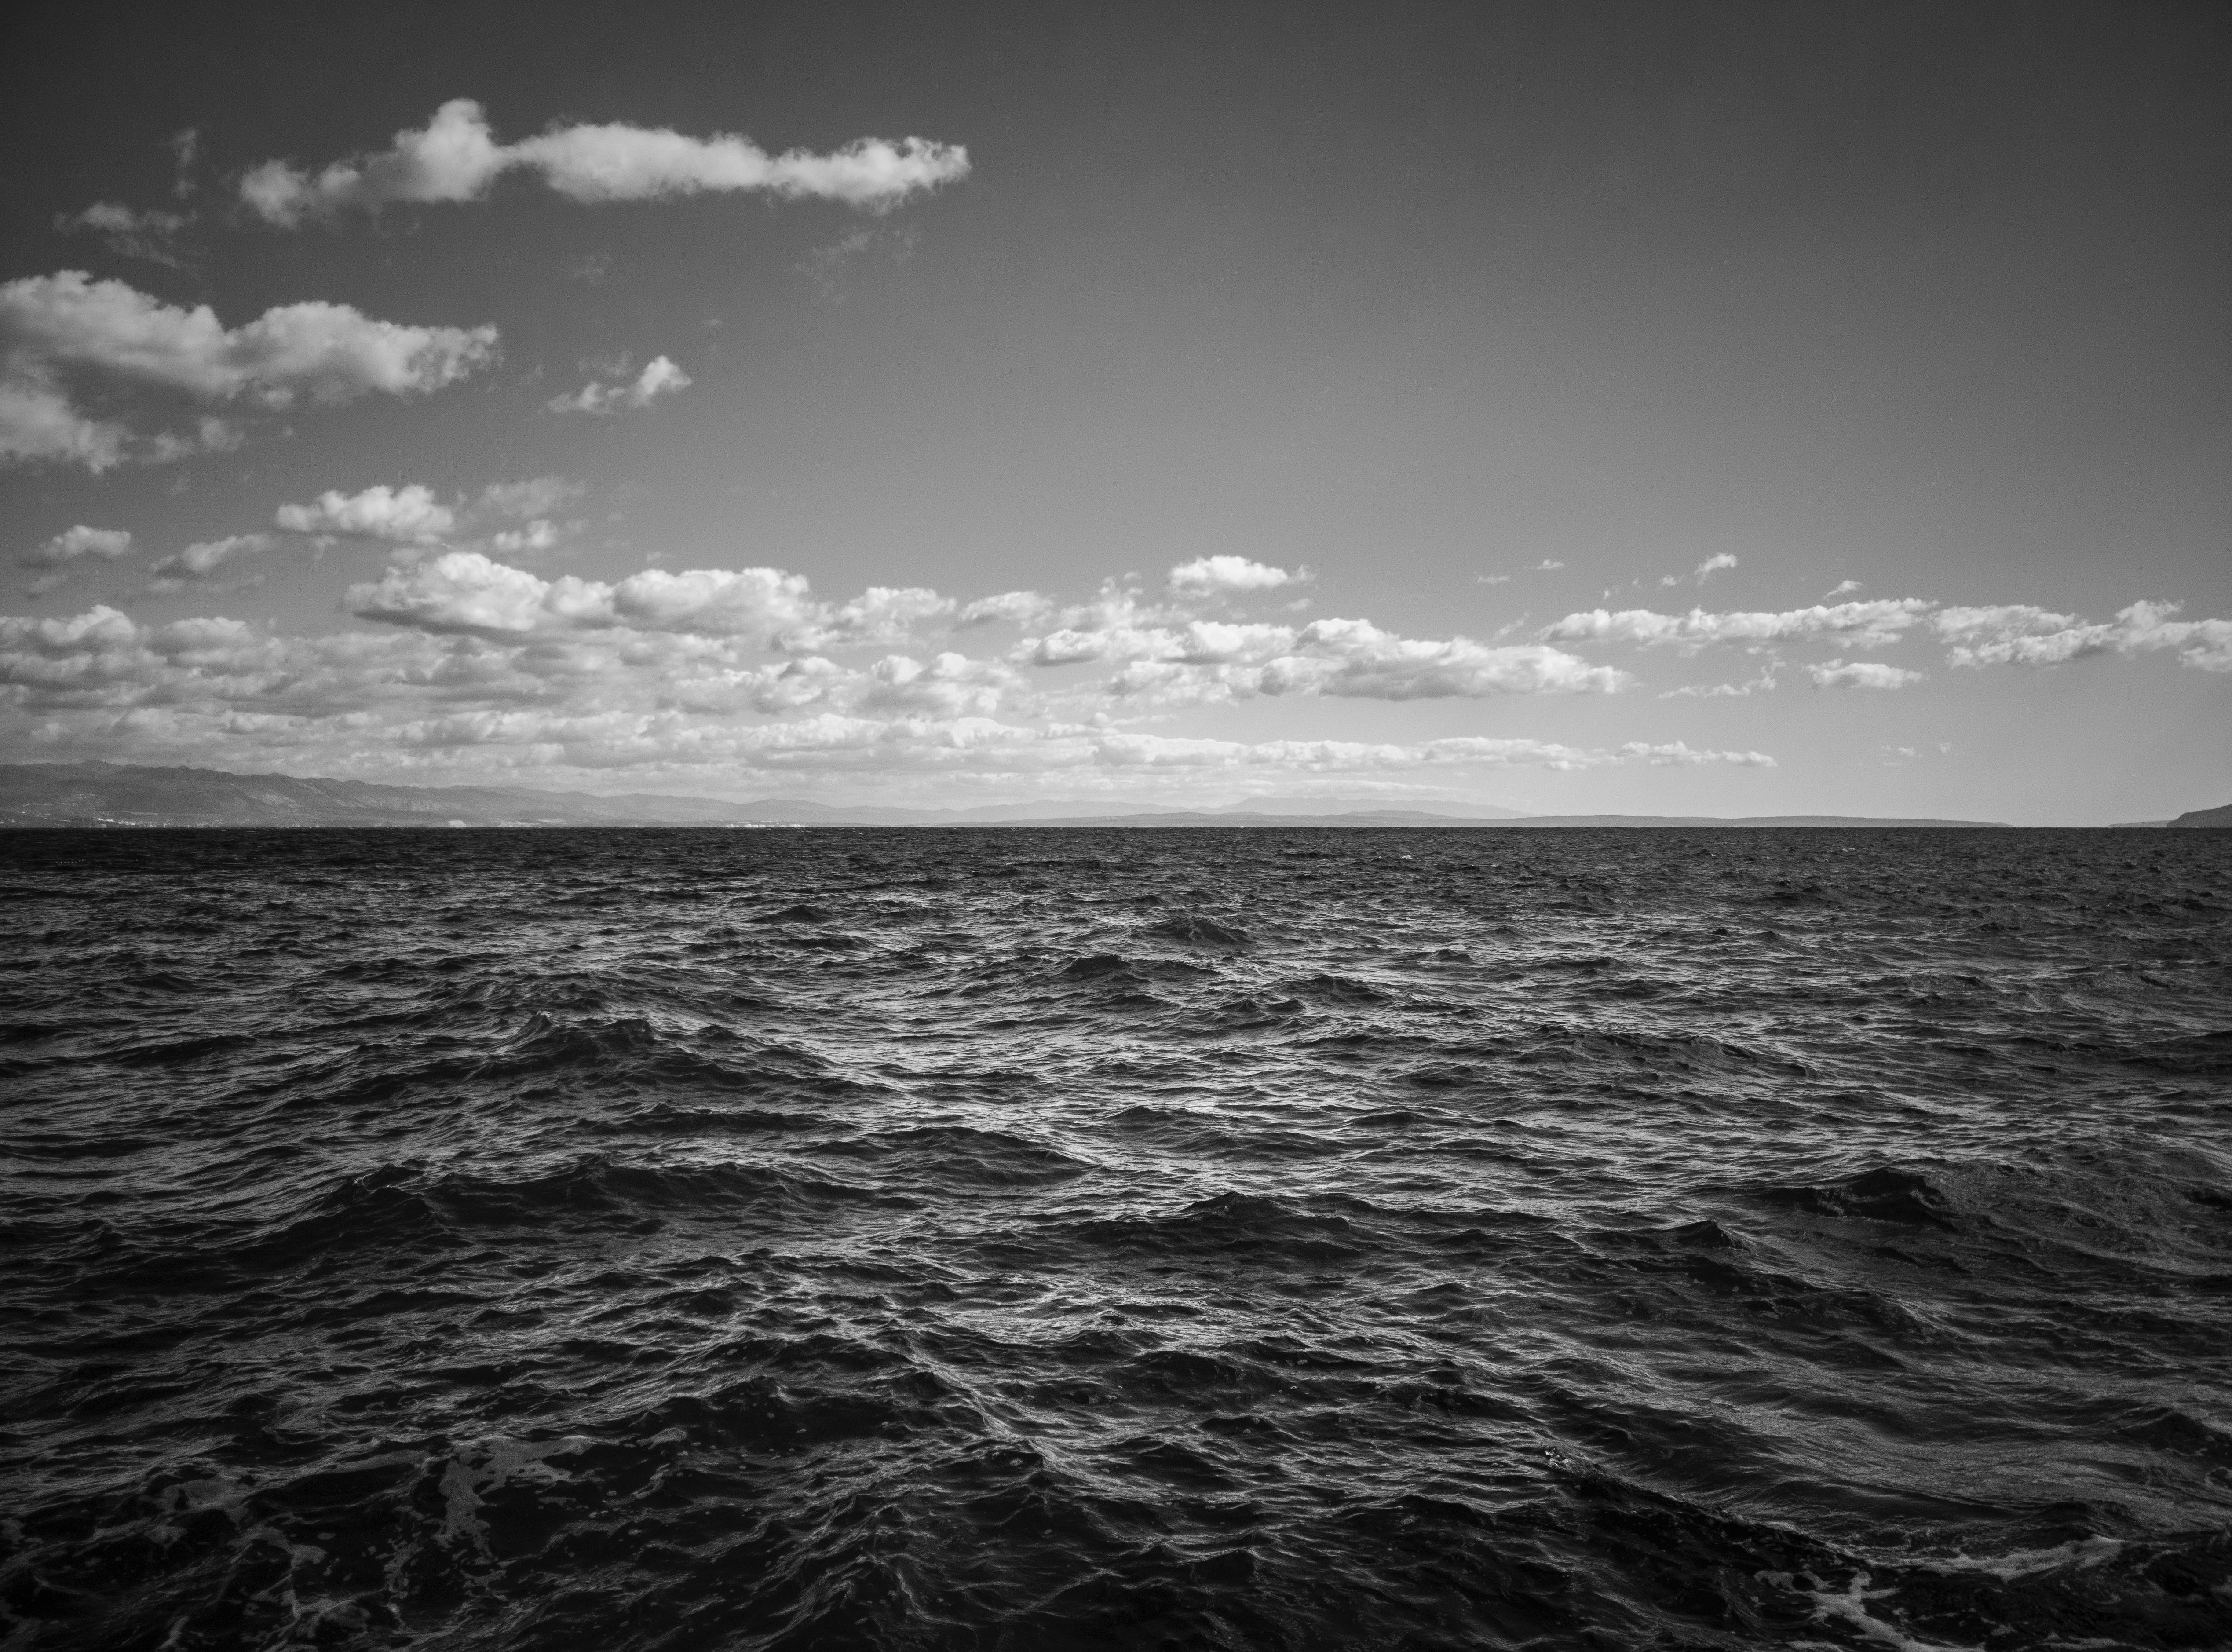 Free stock photo of adriatic sea, black and white, bw, dramatic sky